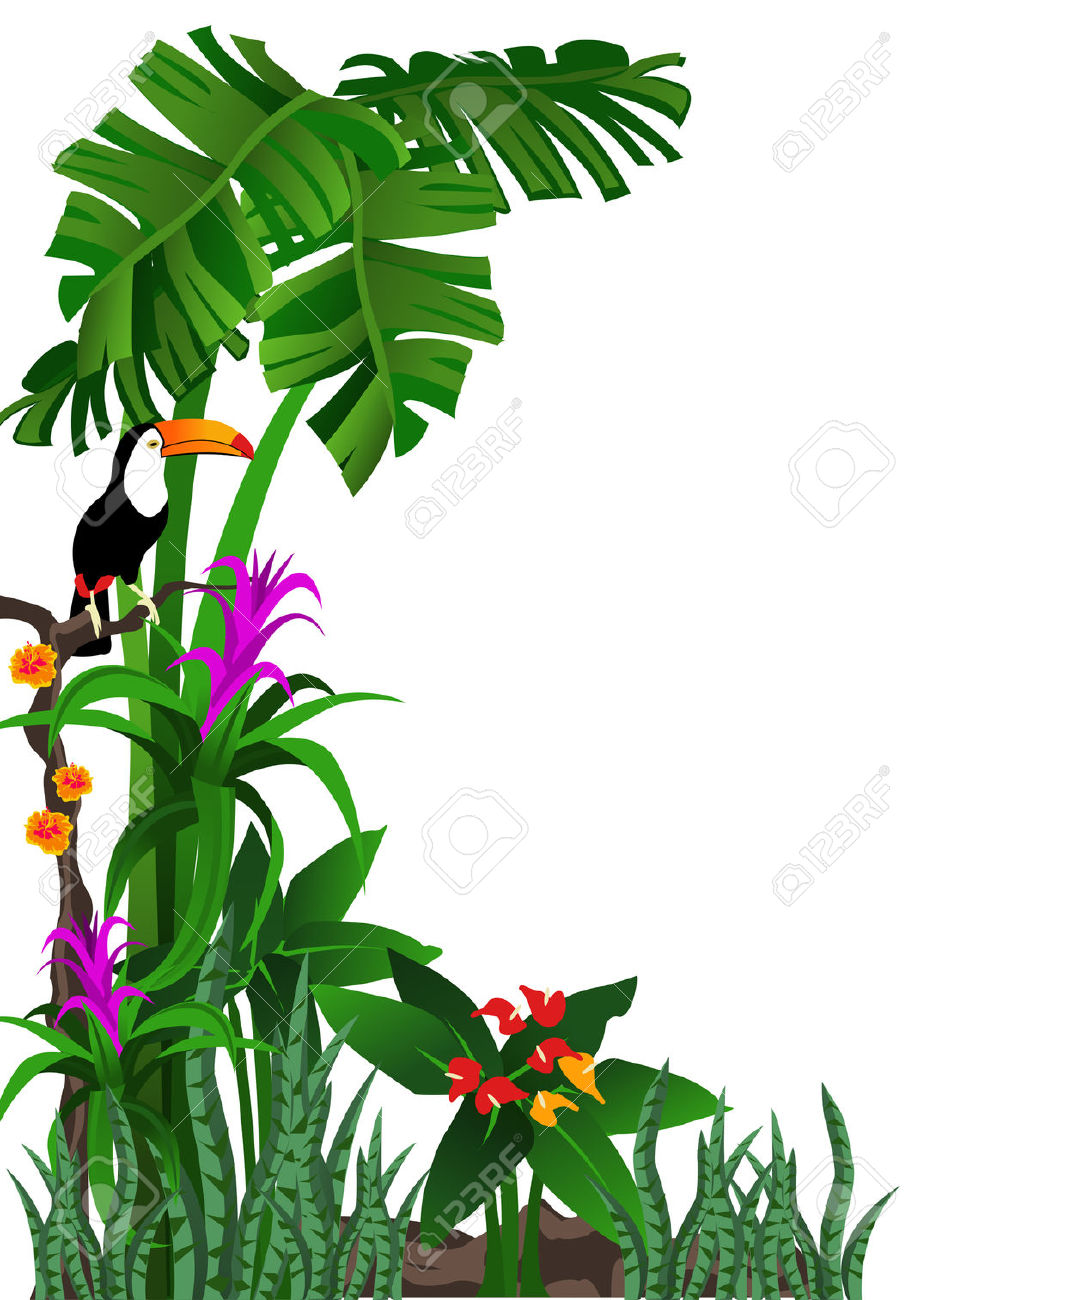 Background Illustration Of A Tropical Forest With Flowers And.